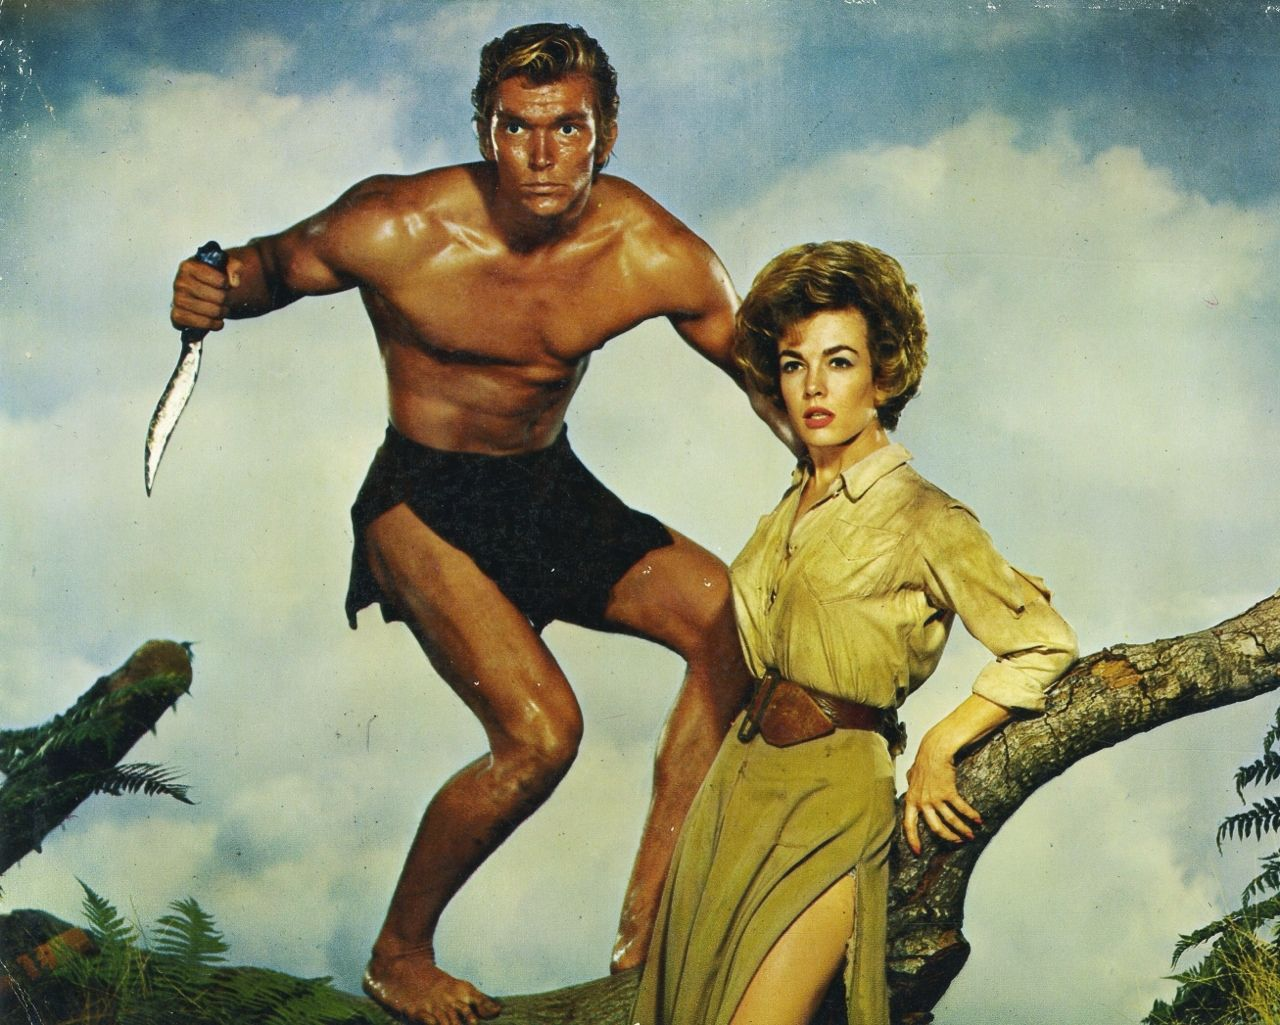 Denny Miller and Joanna Barnes - Tarzan, the Ape Man (1959)